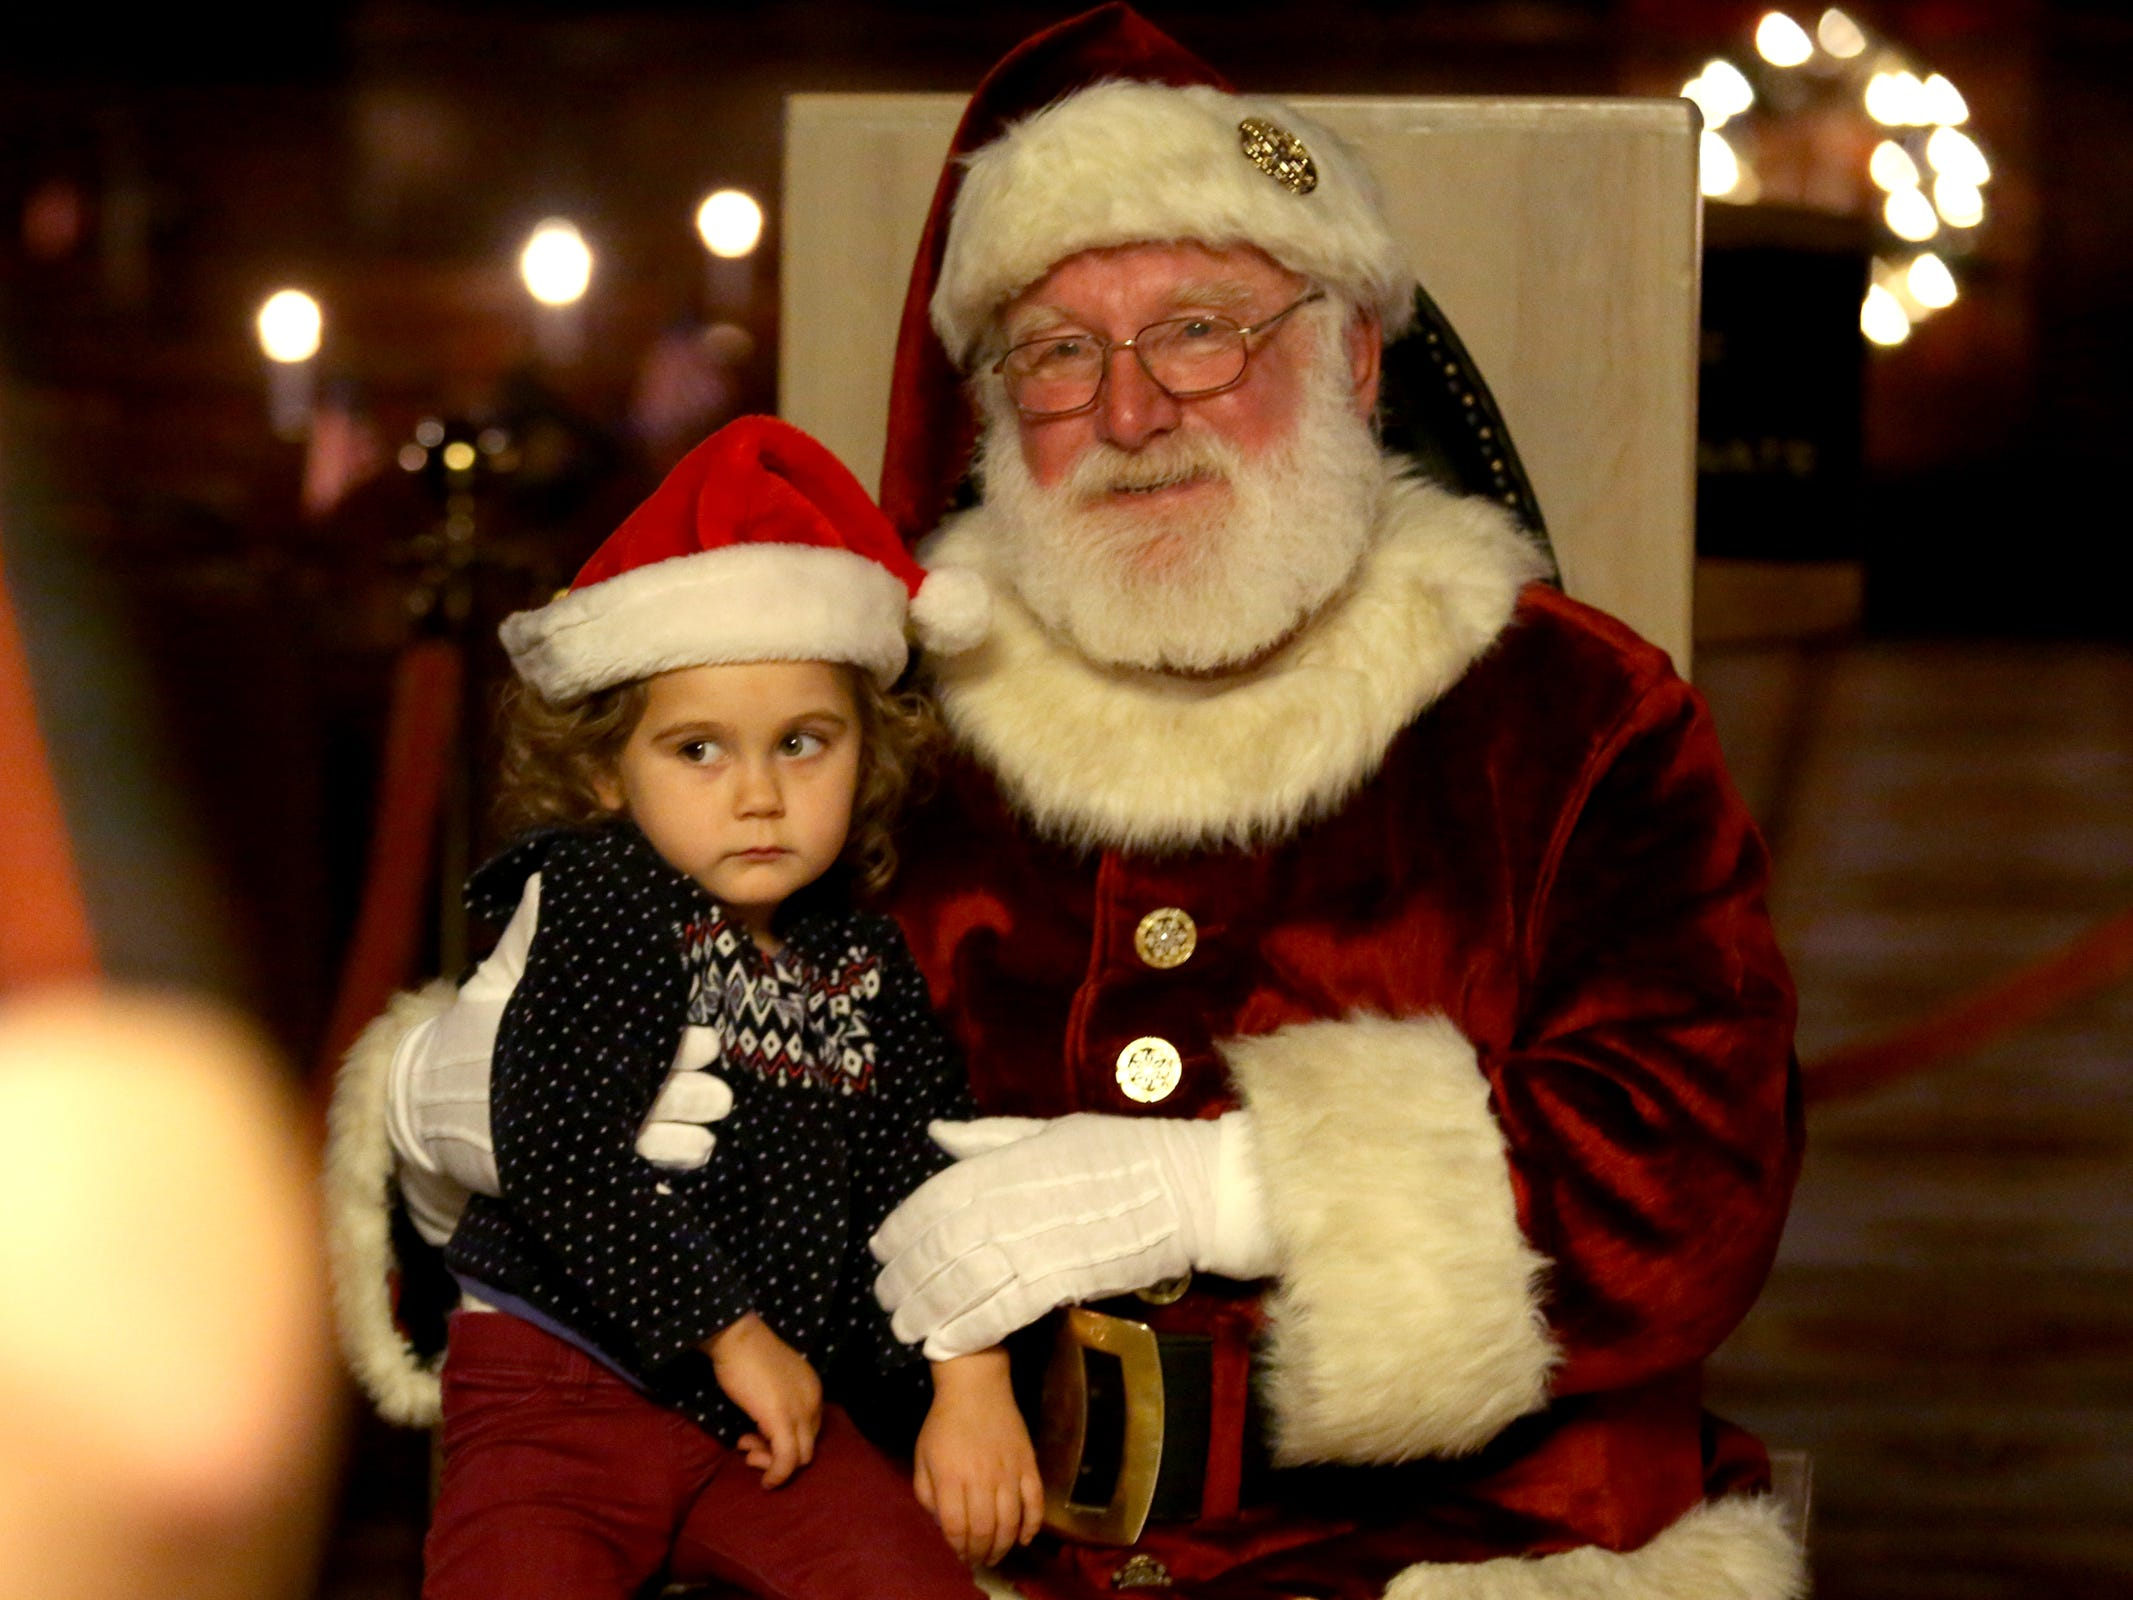 Tesla Lapsley, 2, of Salem, is held by Santa Claus during the Holiday Tree Lighting Celebration at the Oregon State Capitol in Salem on Tuesday, Nov. 27, 2018.